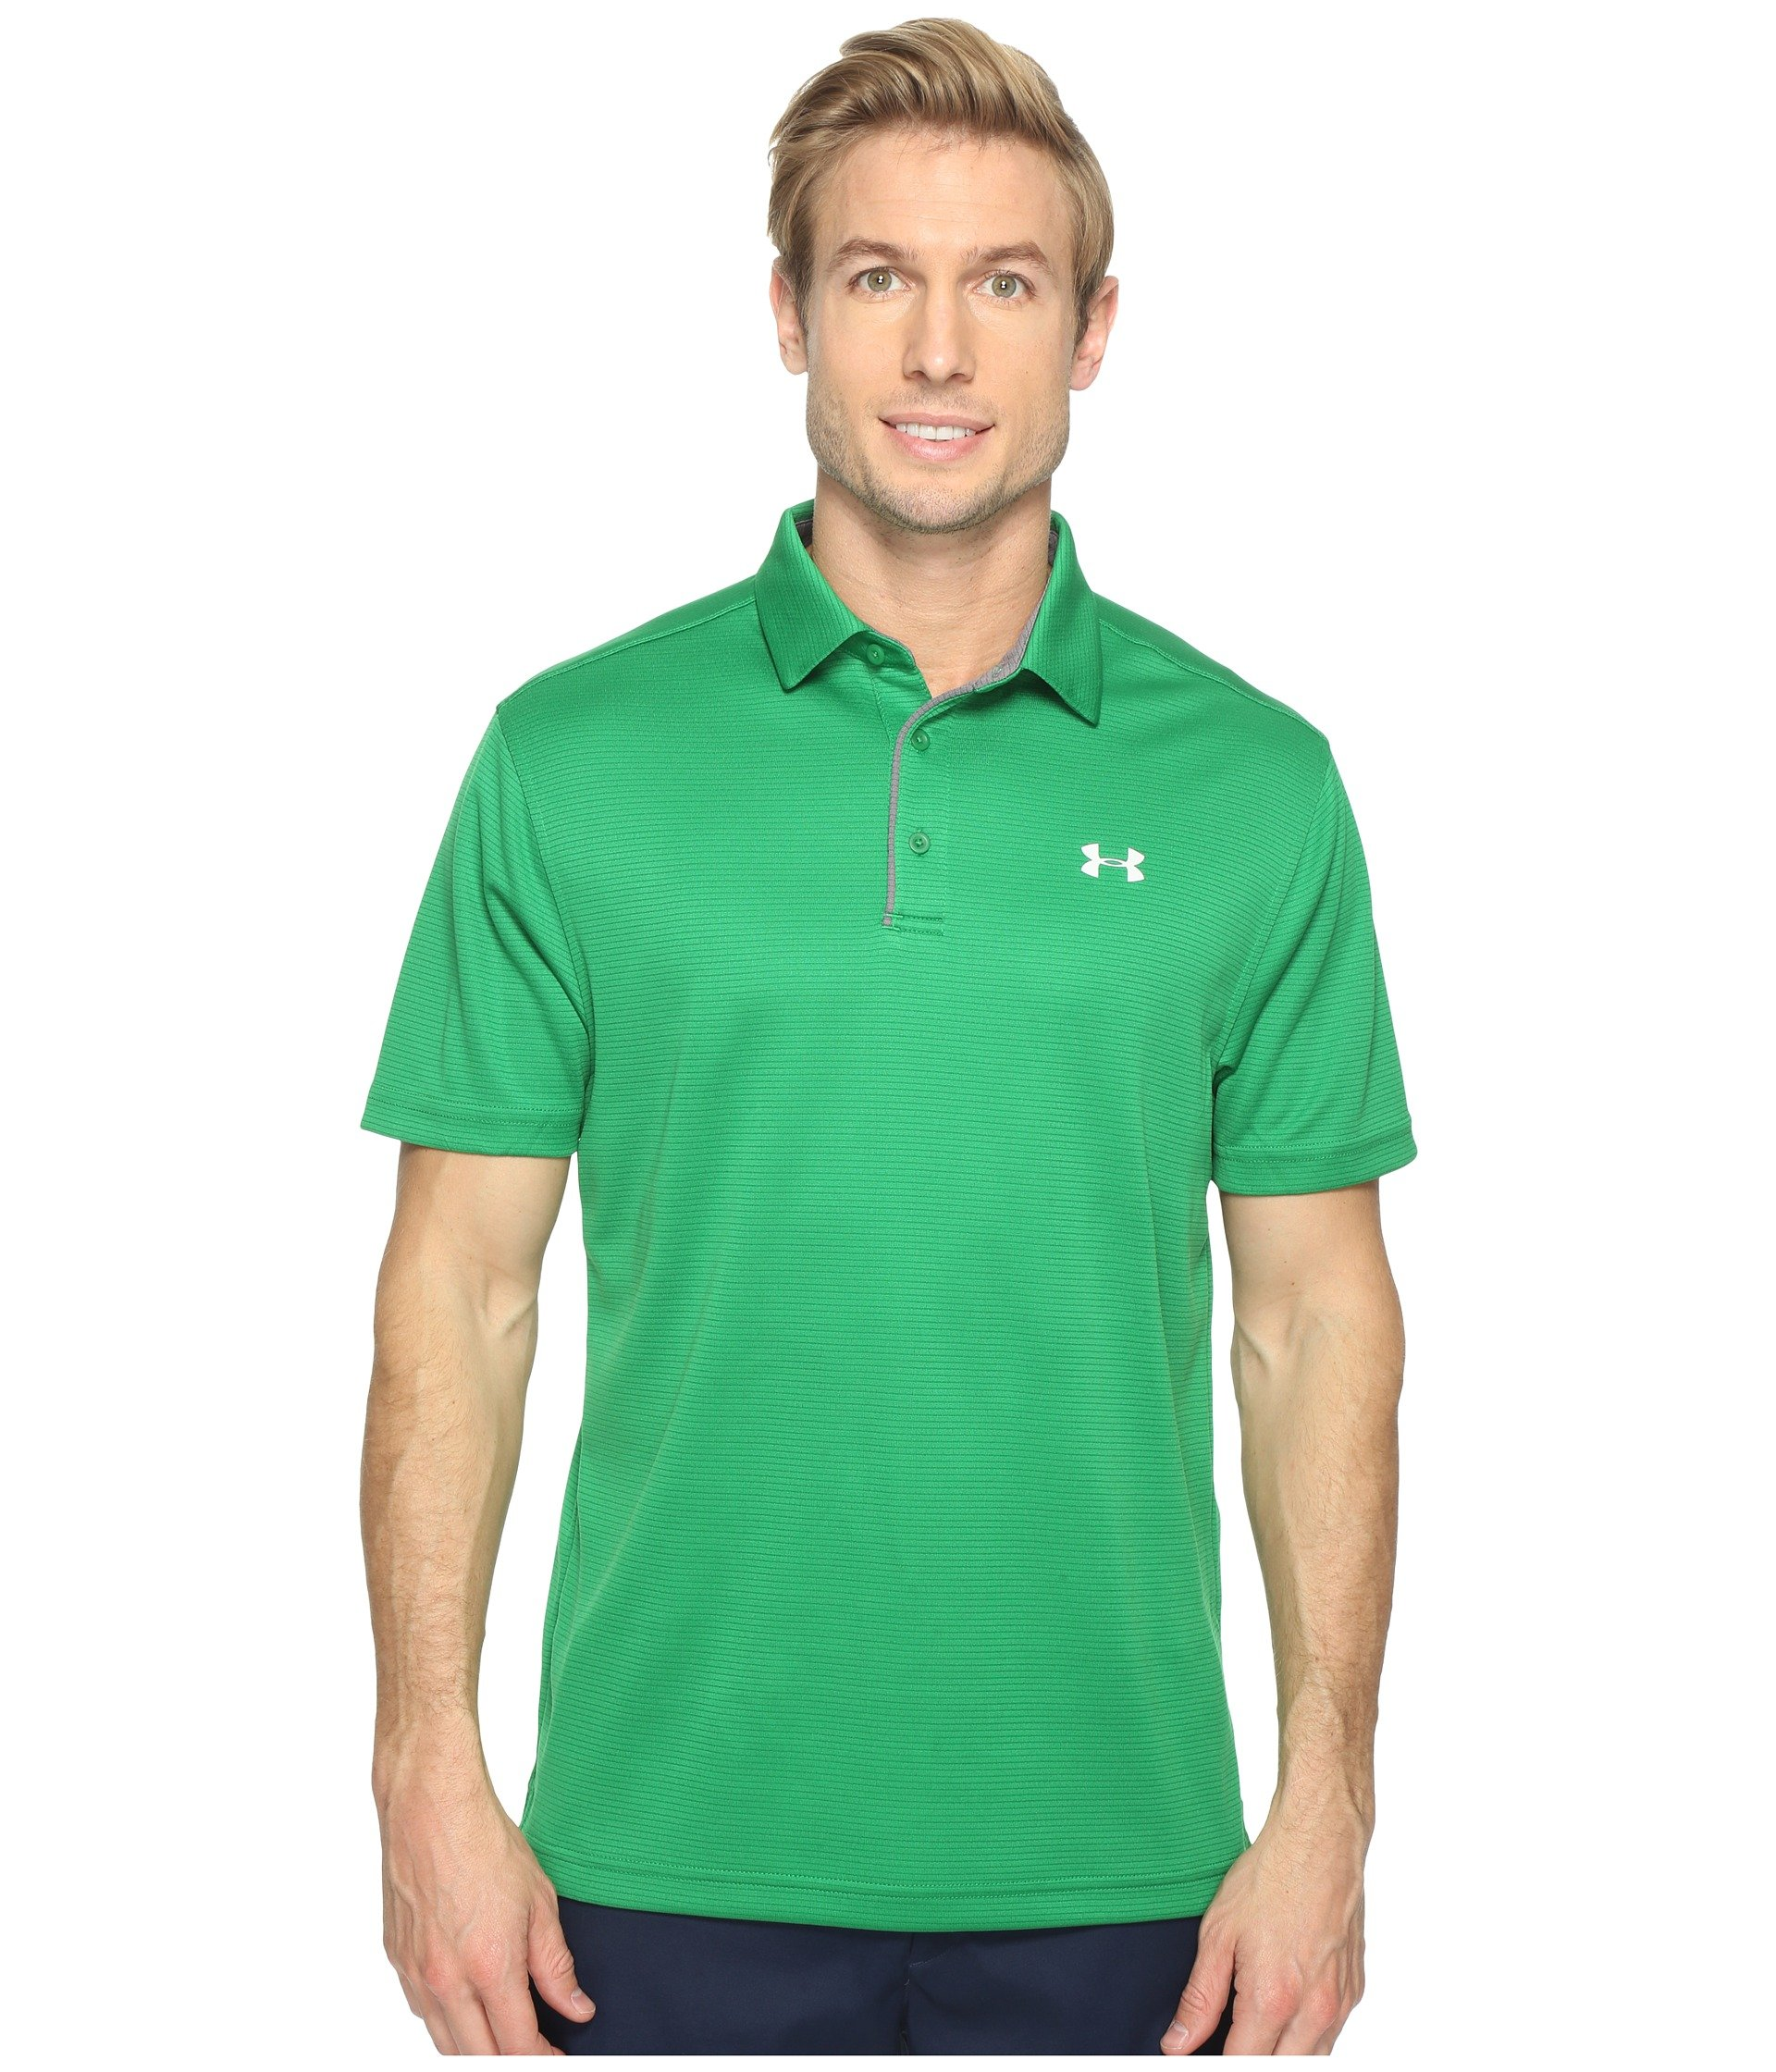 Under Armour Men's Tech Polo, Shock (388)/Glacier Gray, Small by Under Armour